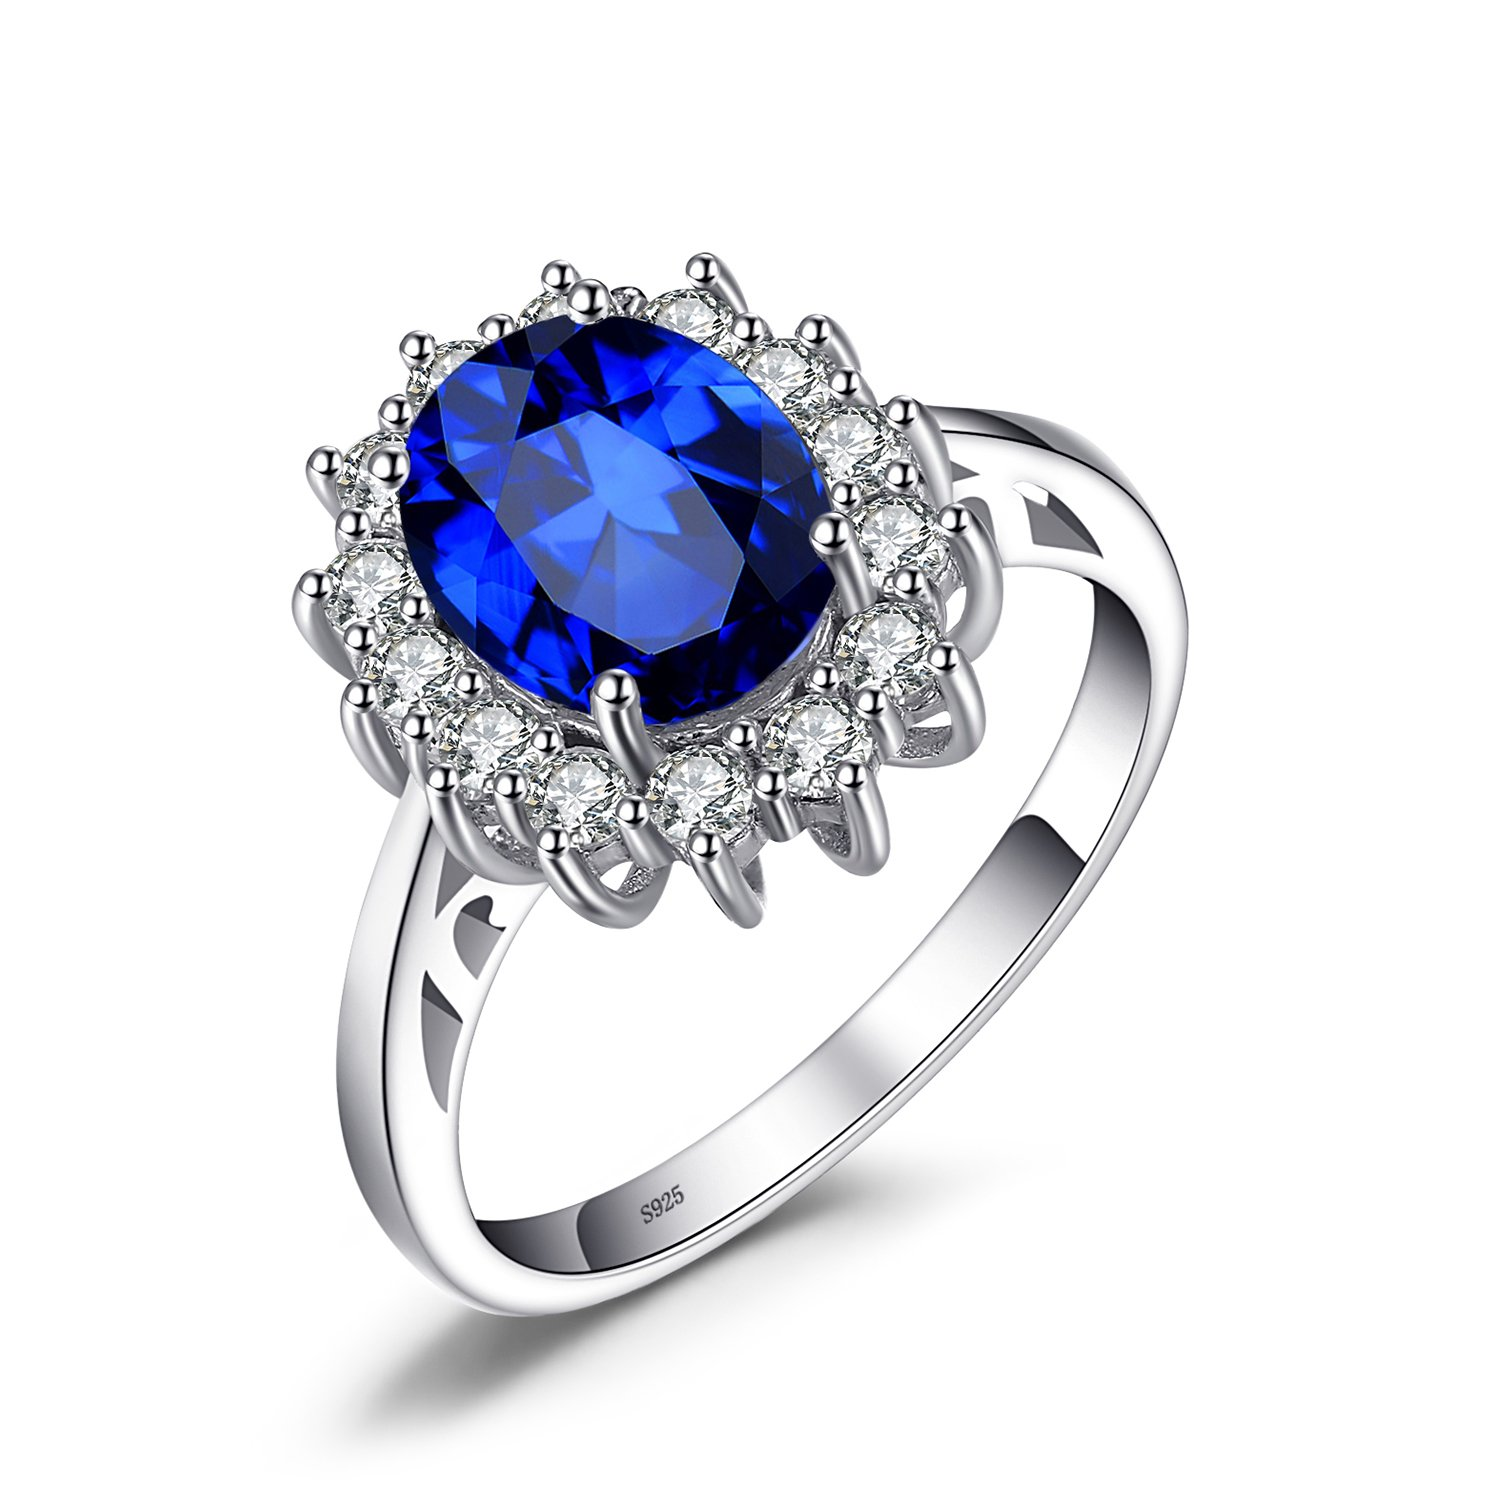 ef yg blue ring products bluesapphire collection trio bs sapphire rings stack saffire